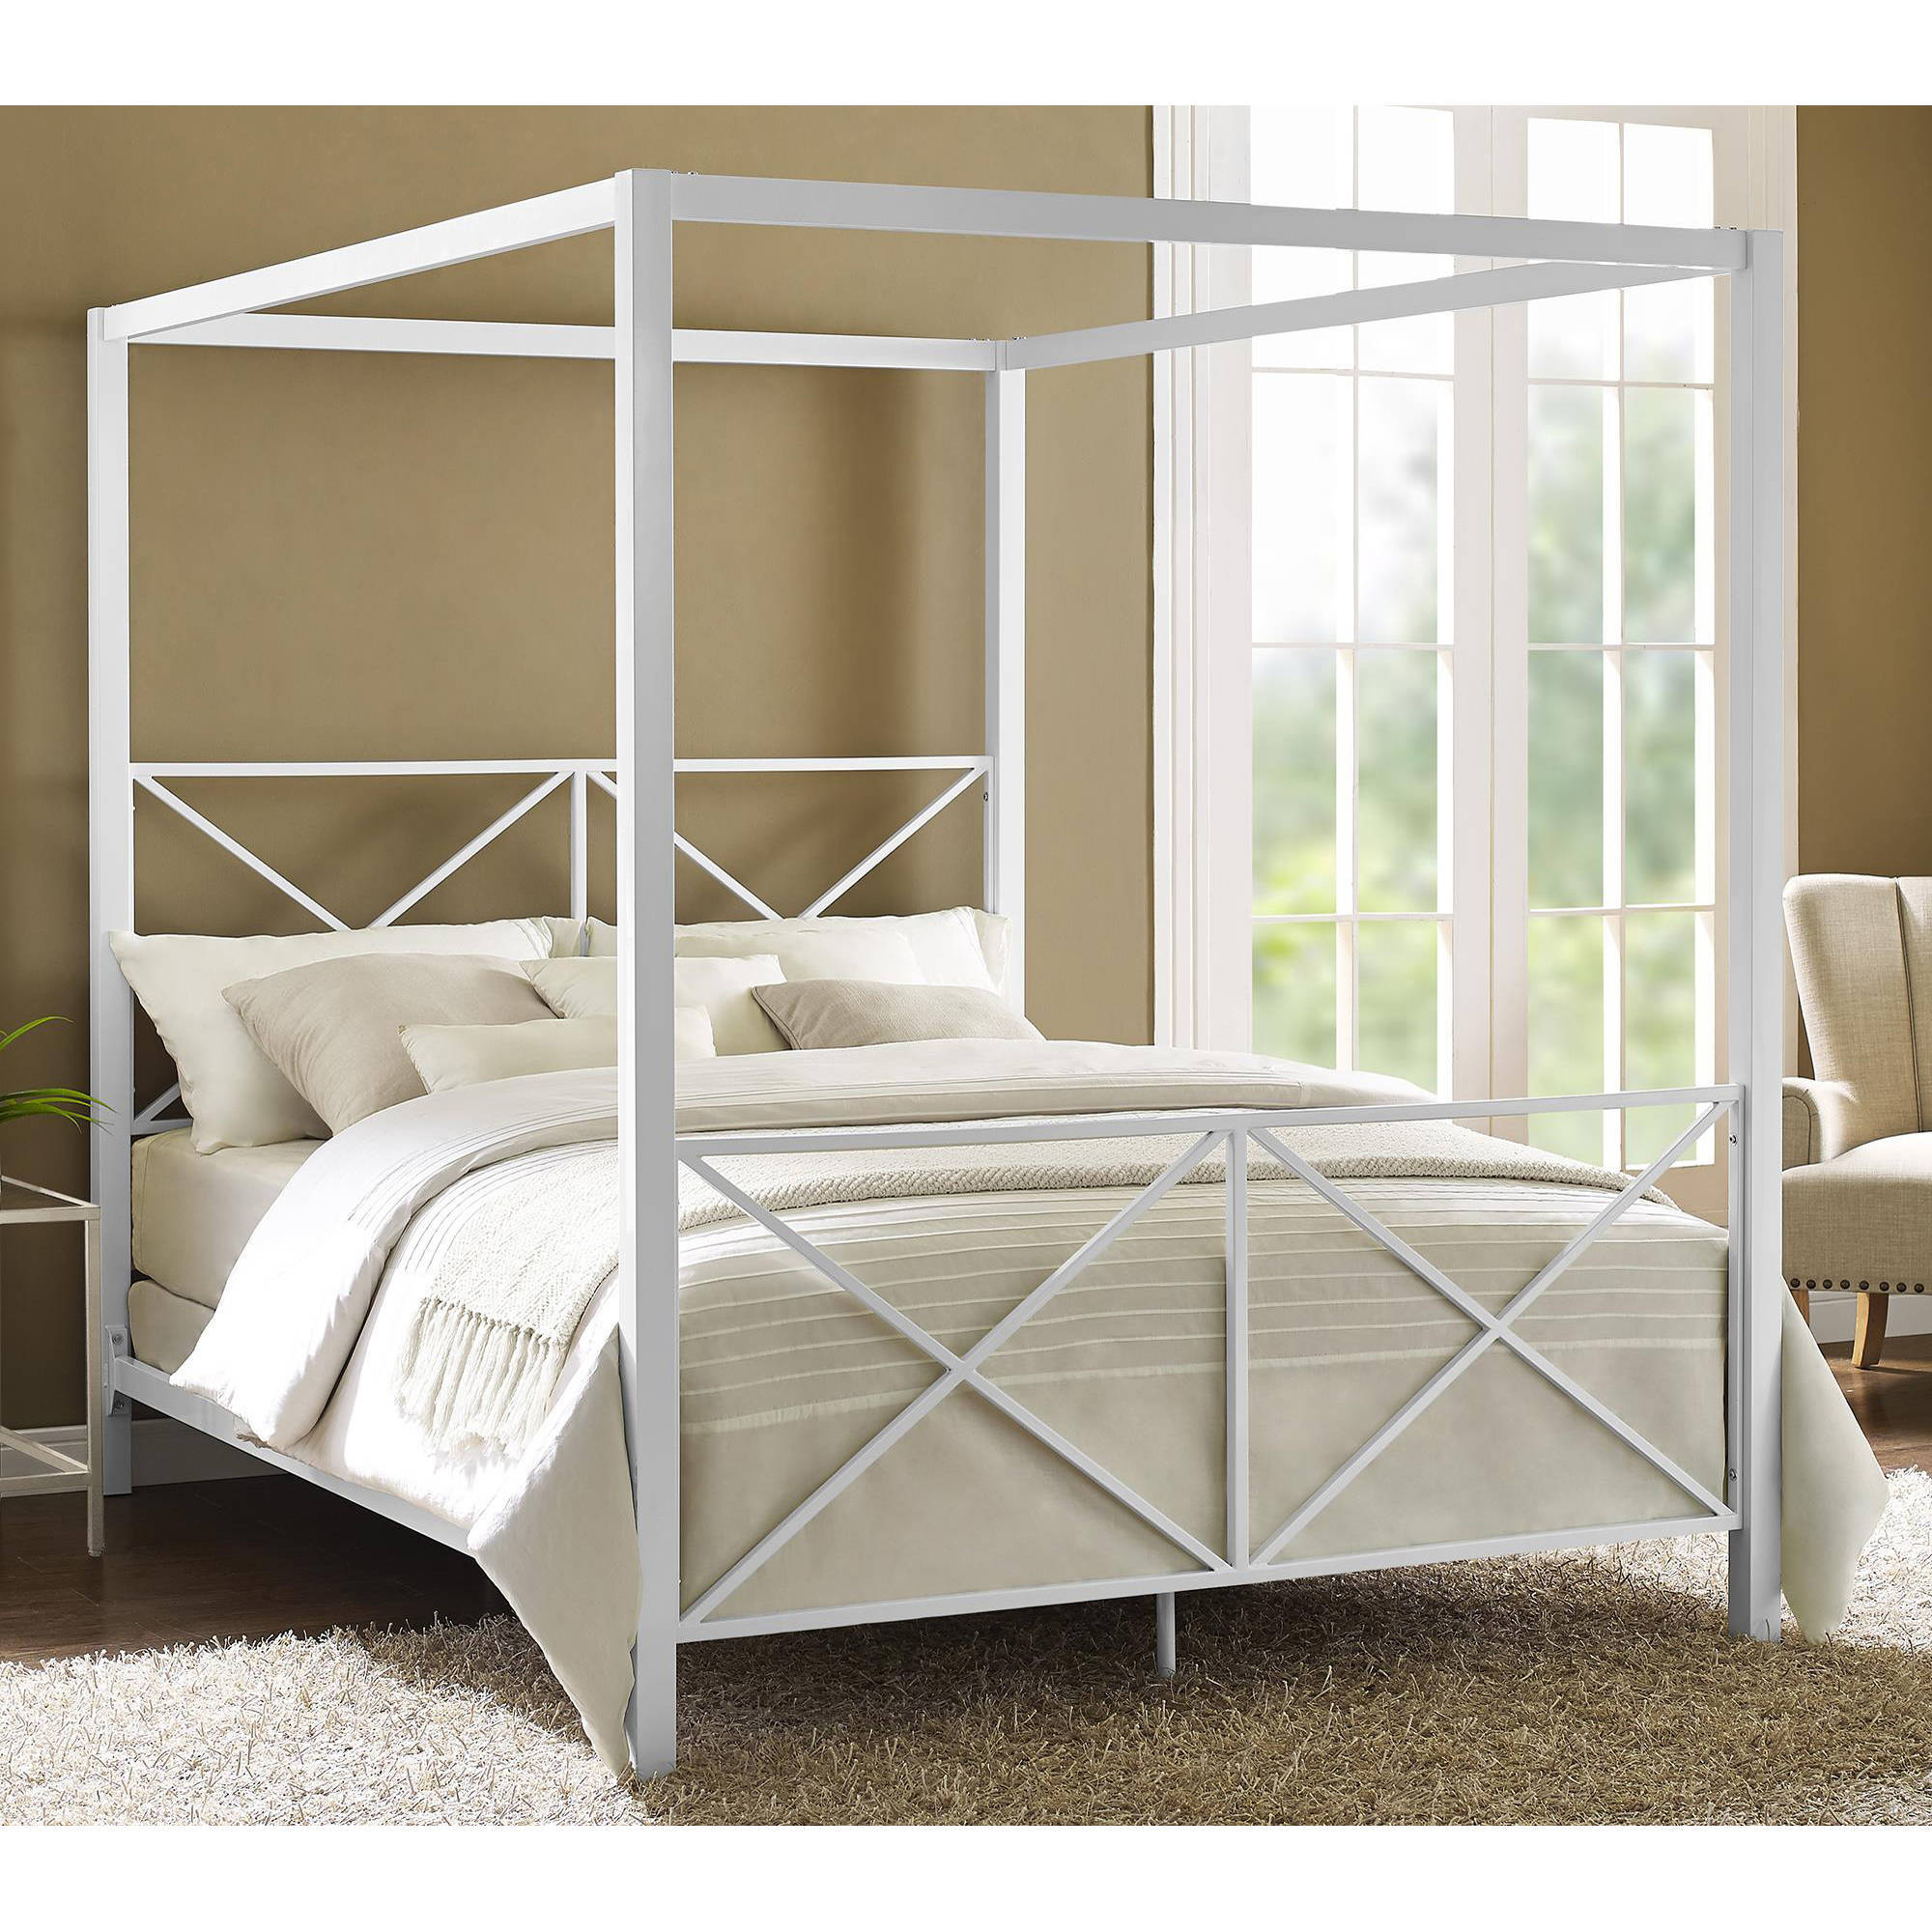 DHP Rosedale Metal Canopy Queen Bed